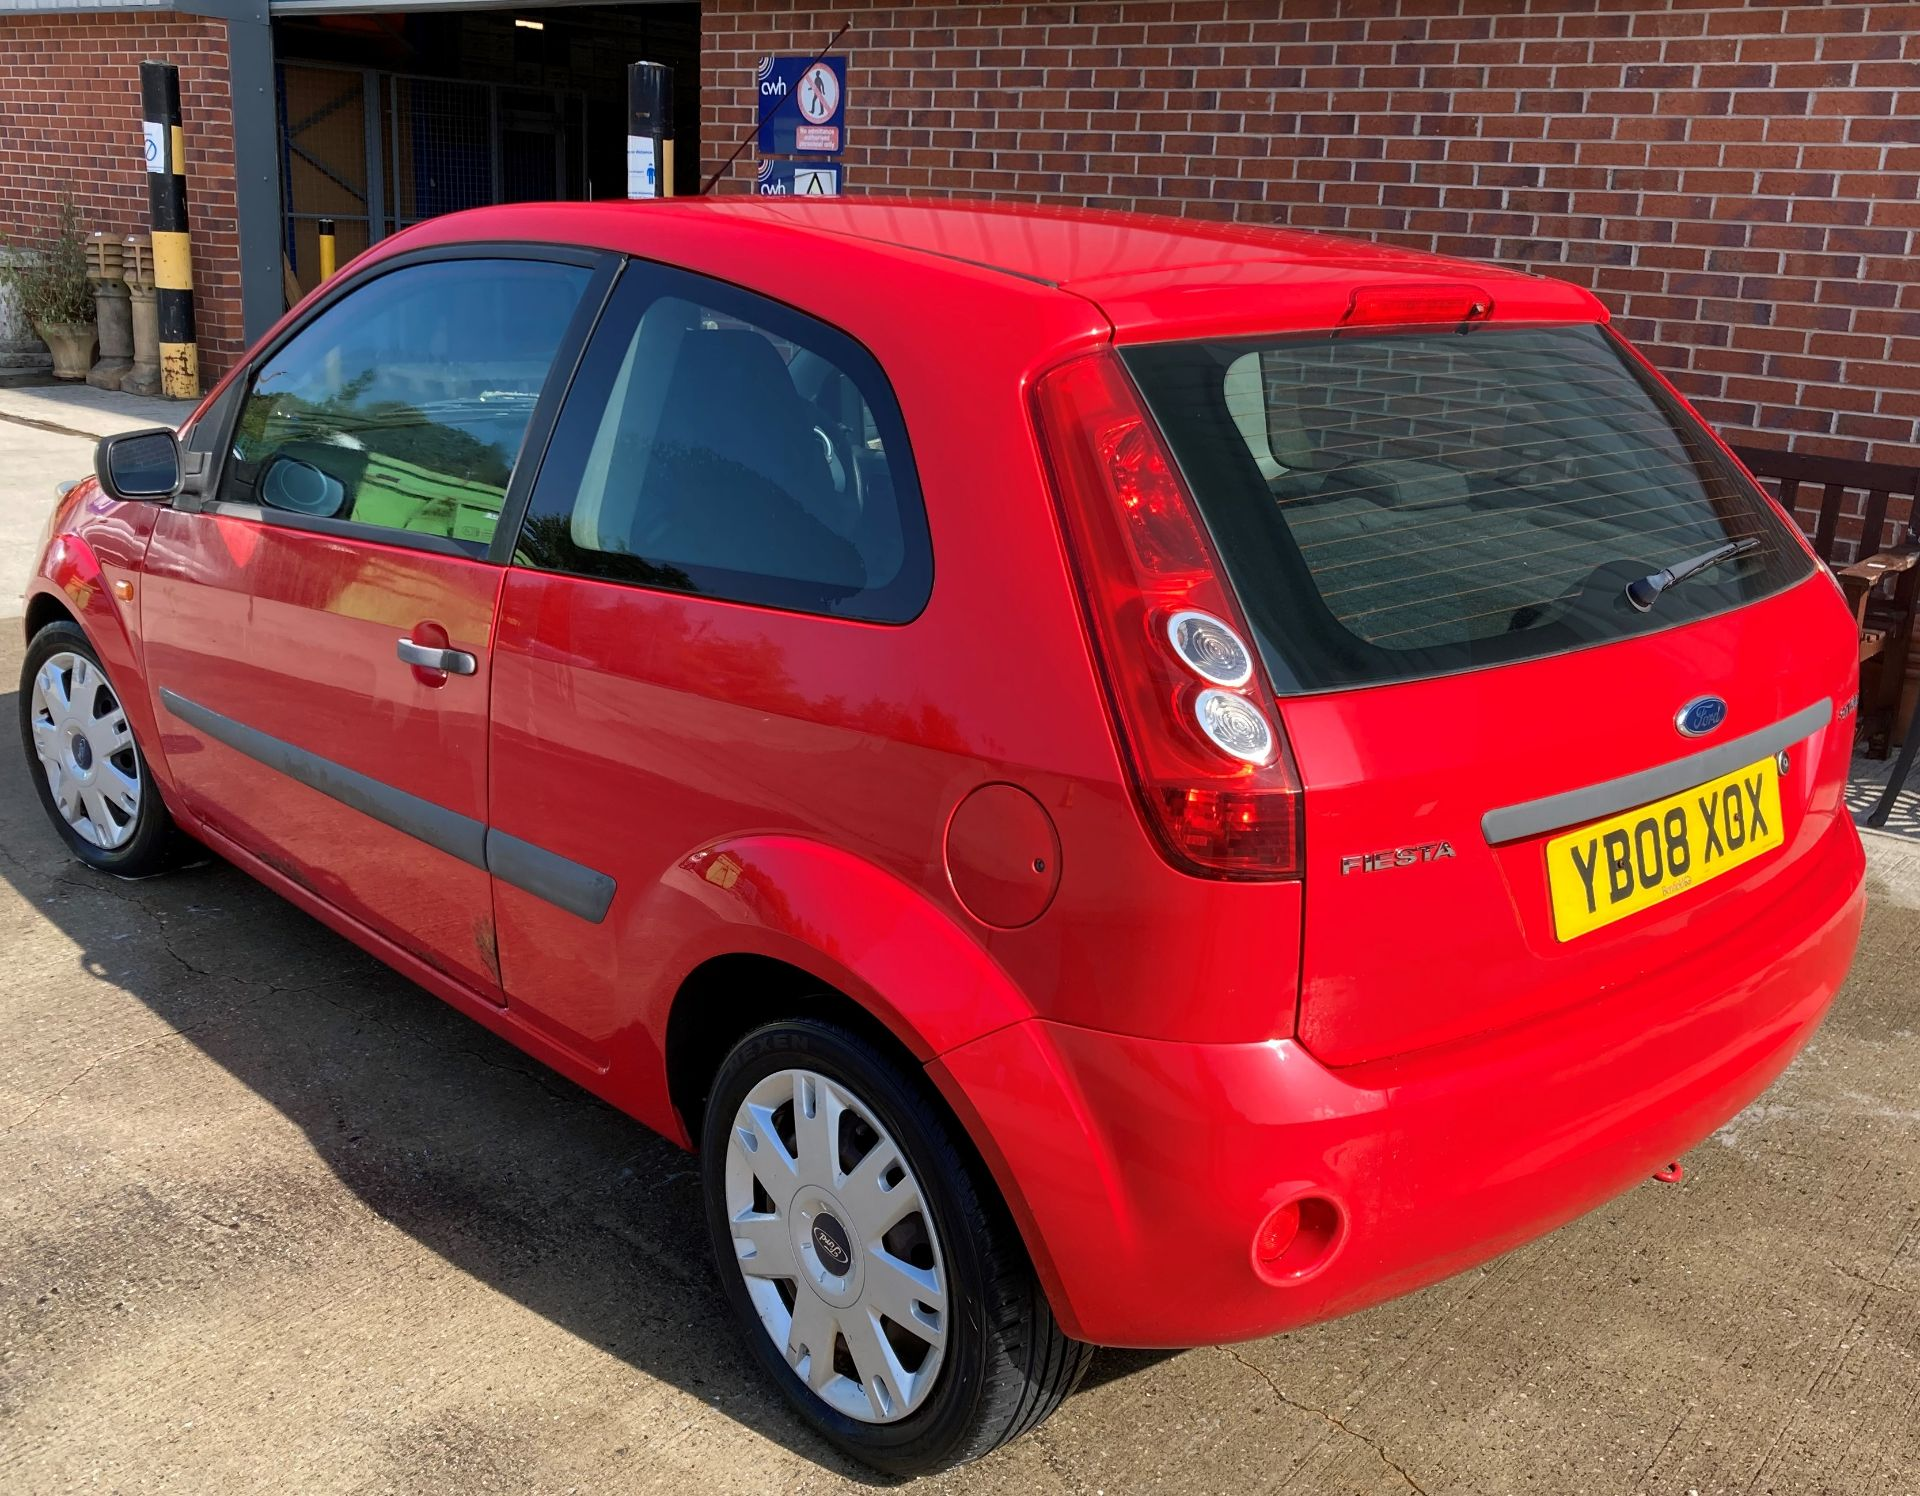 FROM A DECEASED ESTATE FORD FIESTA STYLE 1.2 3 door hatchback - petrol - red Reg No: YB08 XOX Rec. - Image 3 of 10